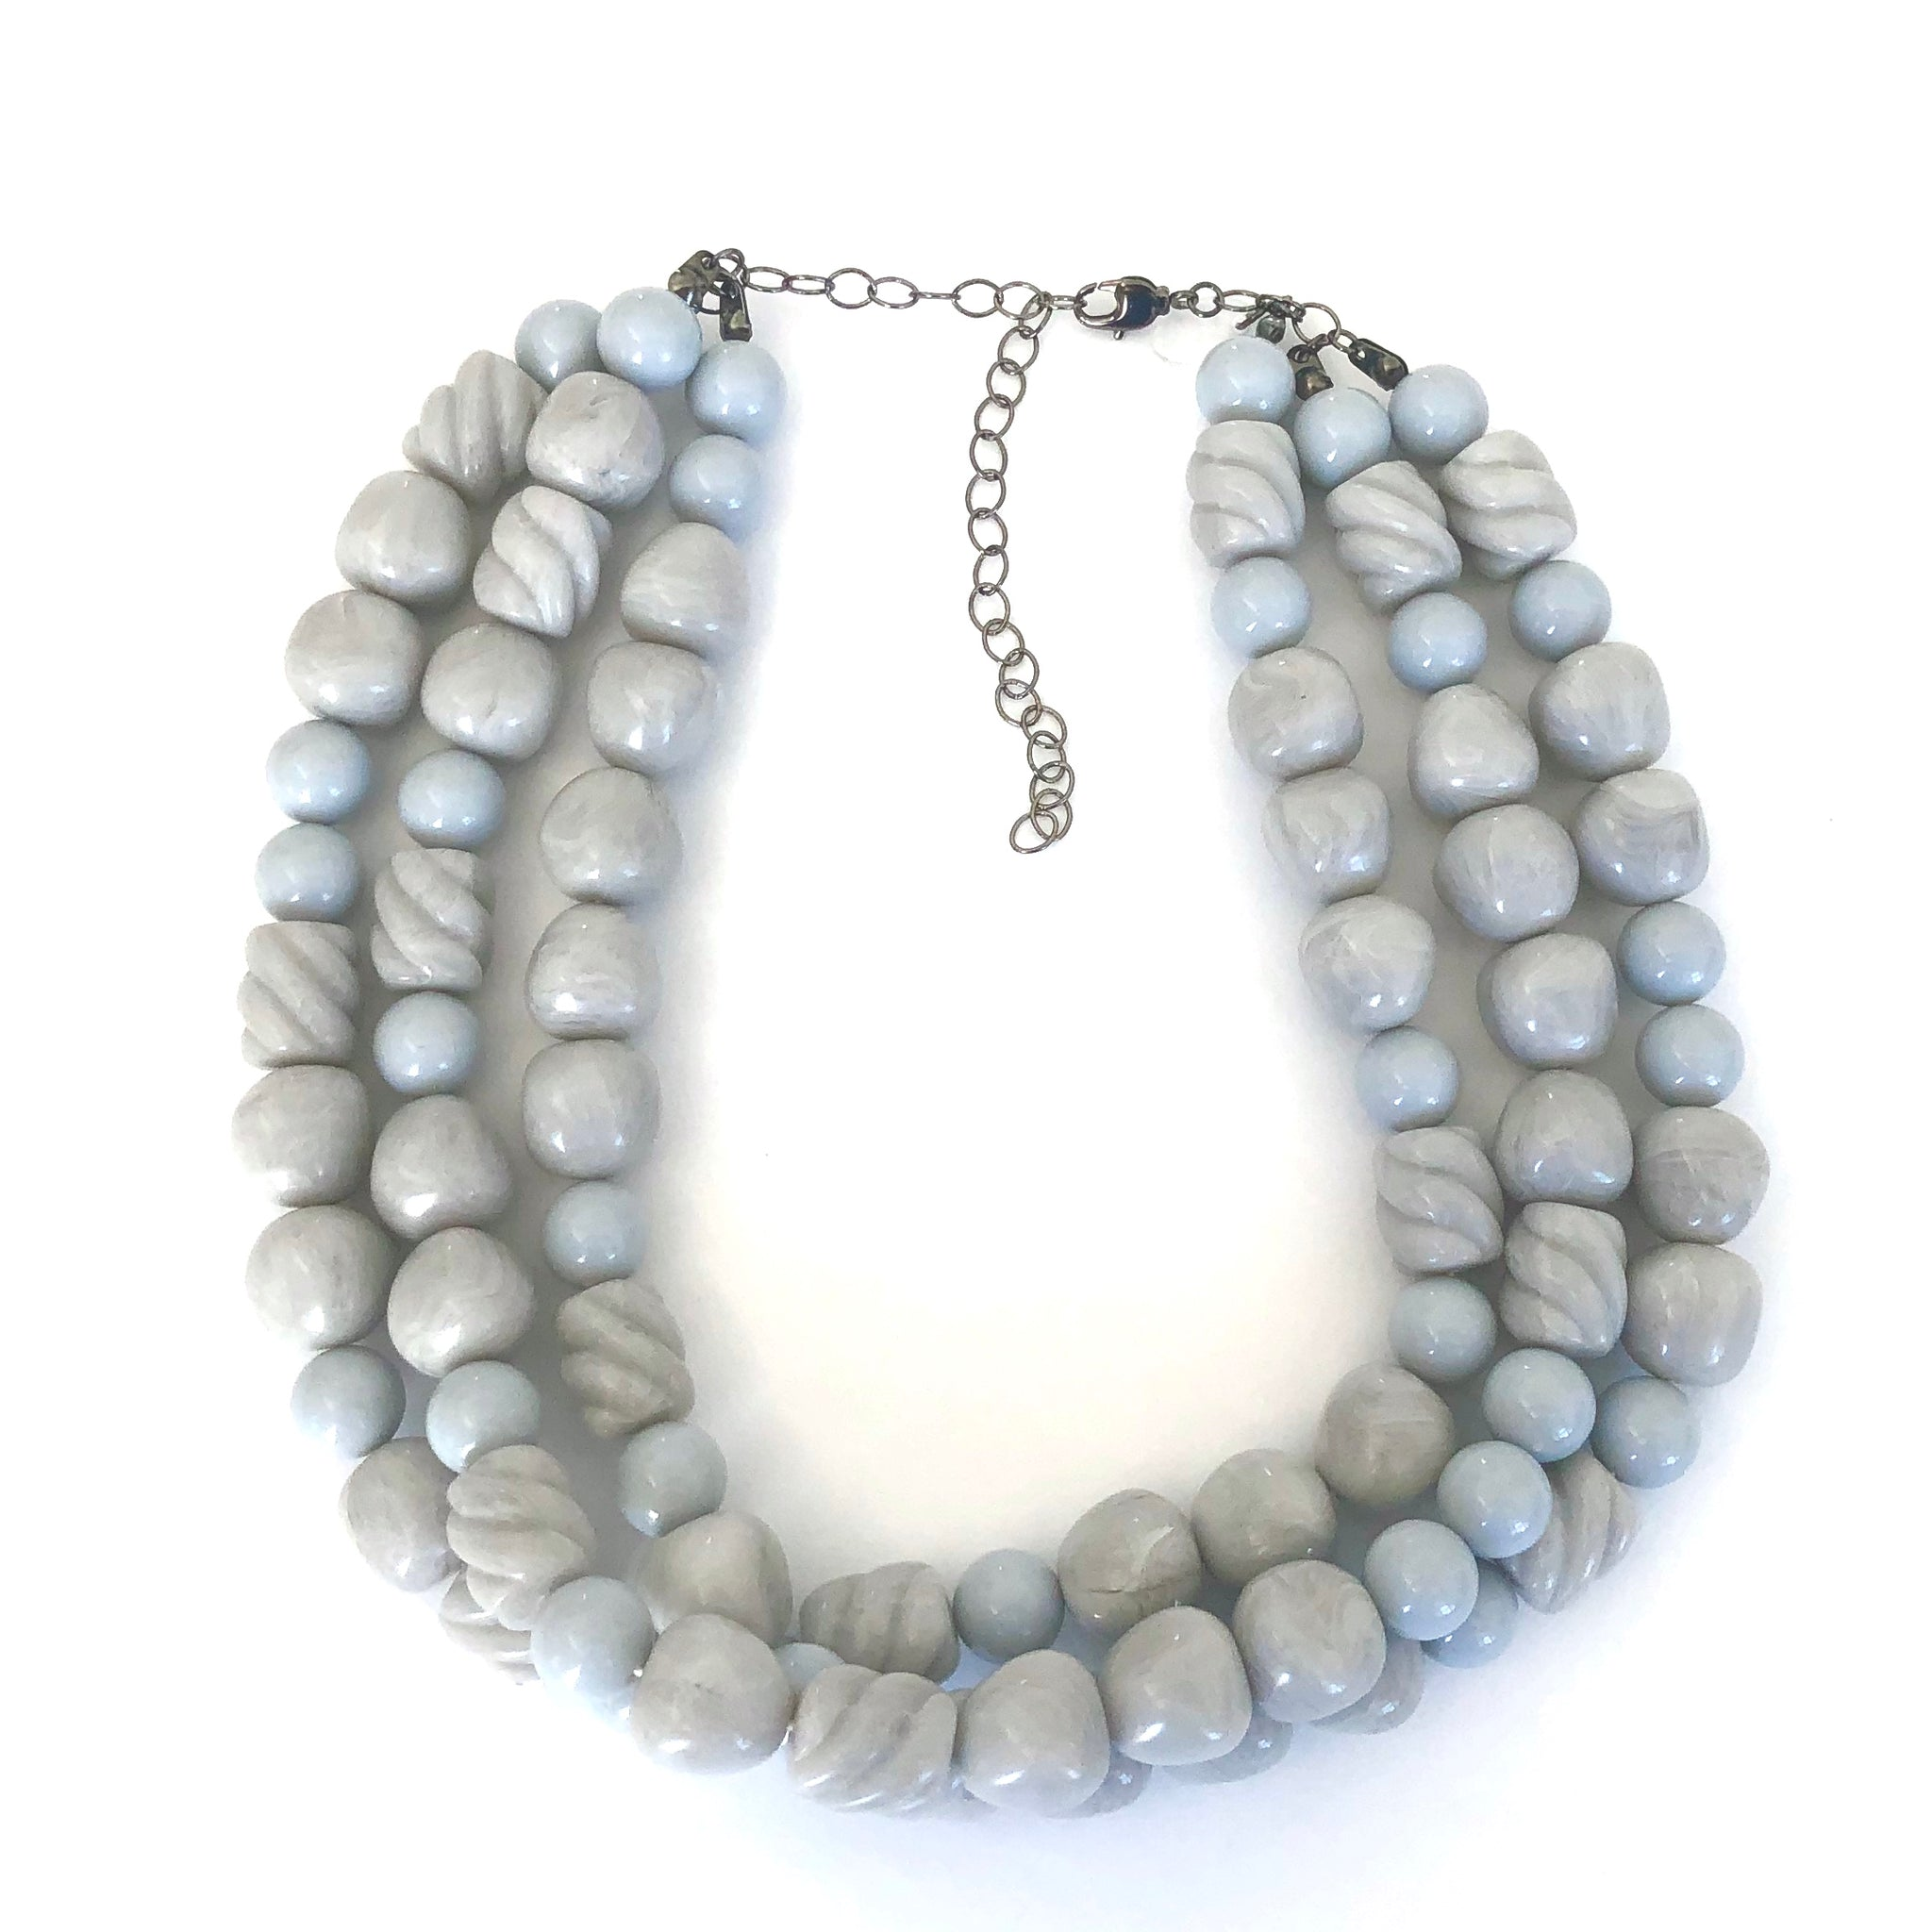 Light Grey Carved & Twists Beaded Morgan Necklace